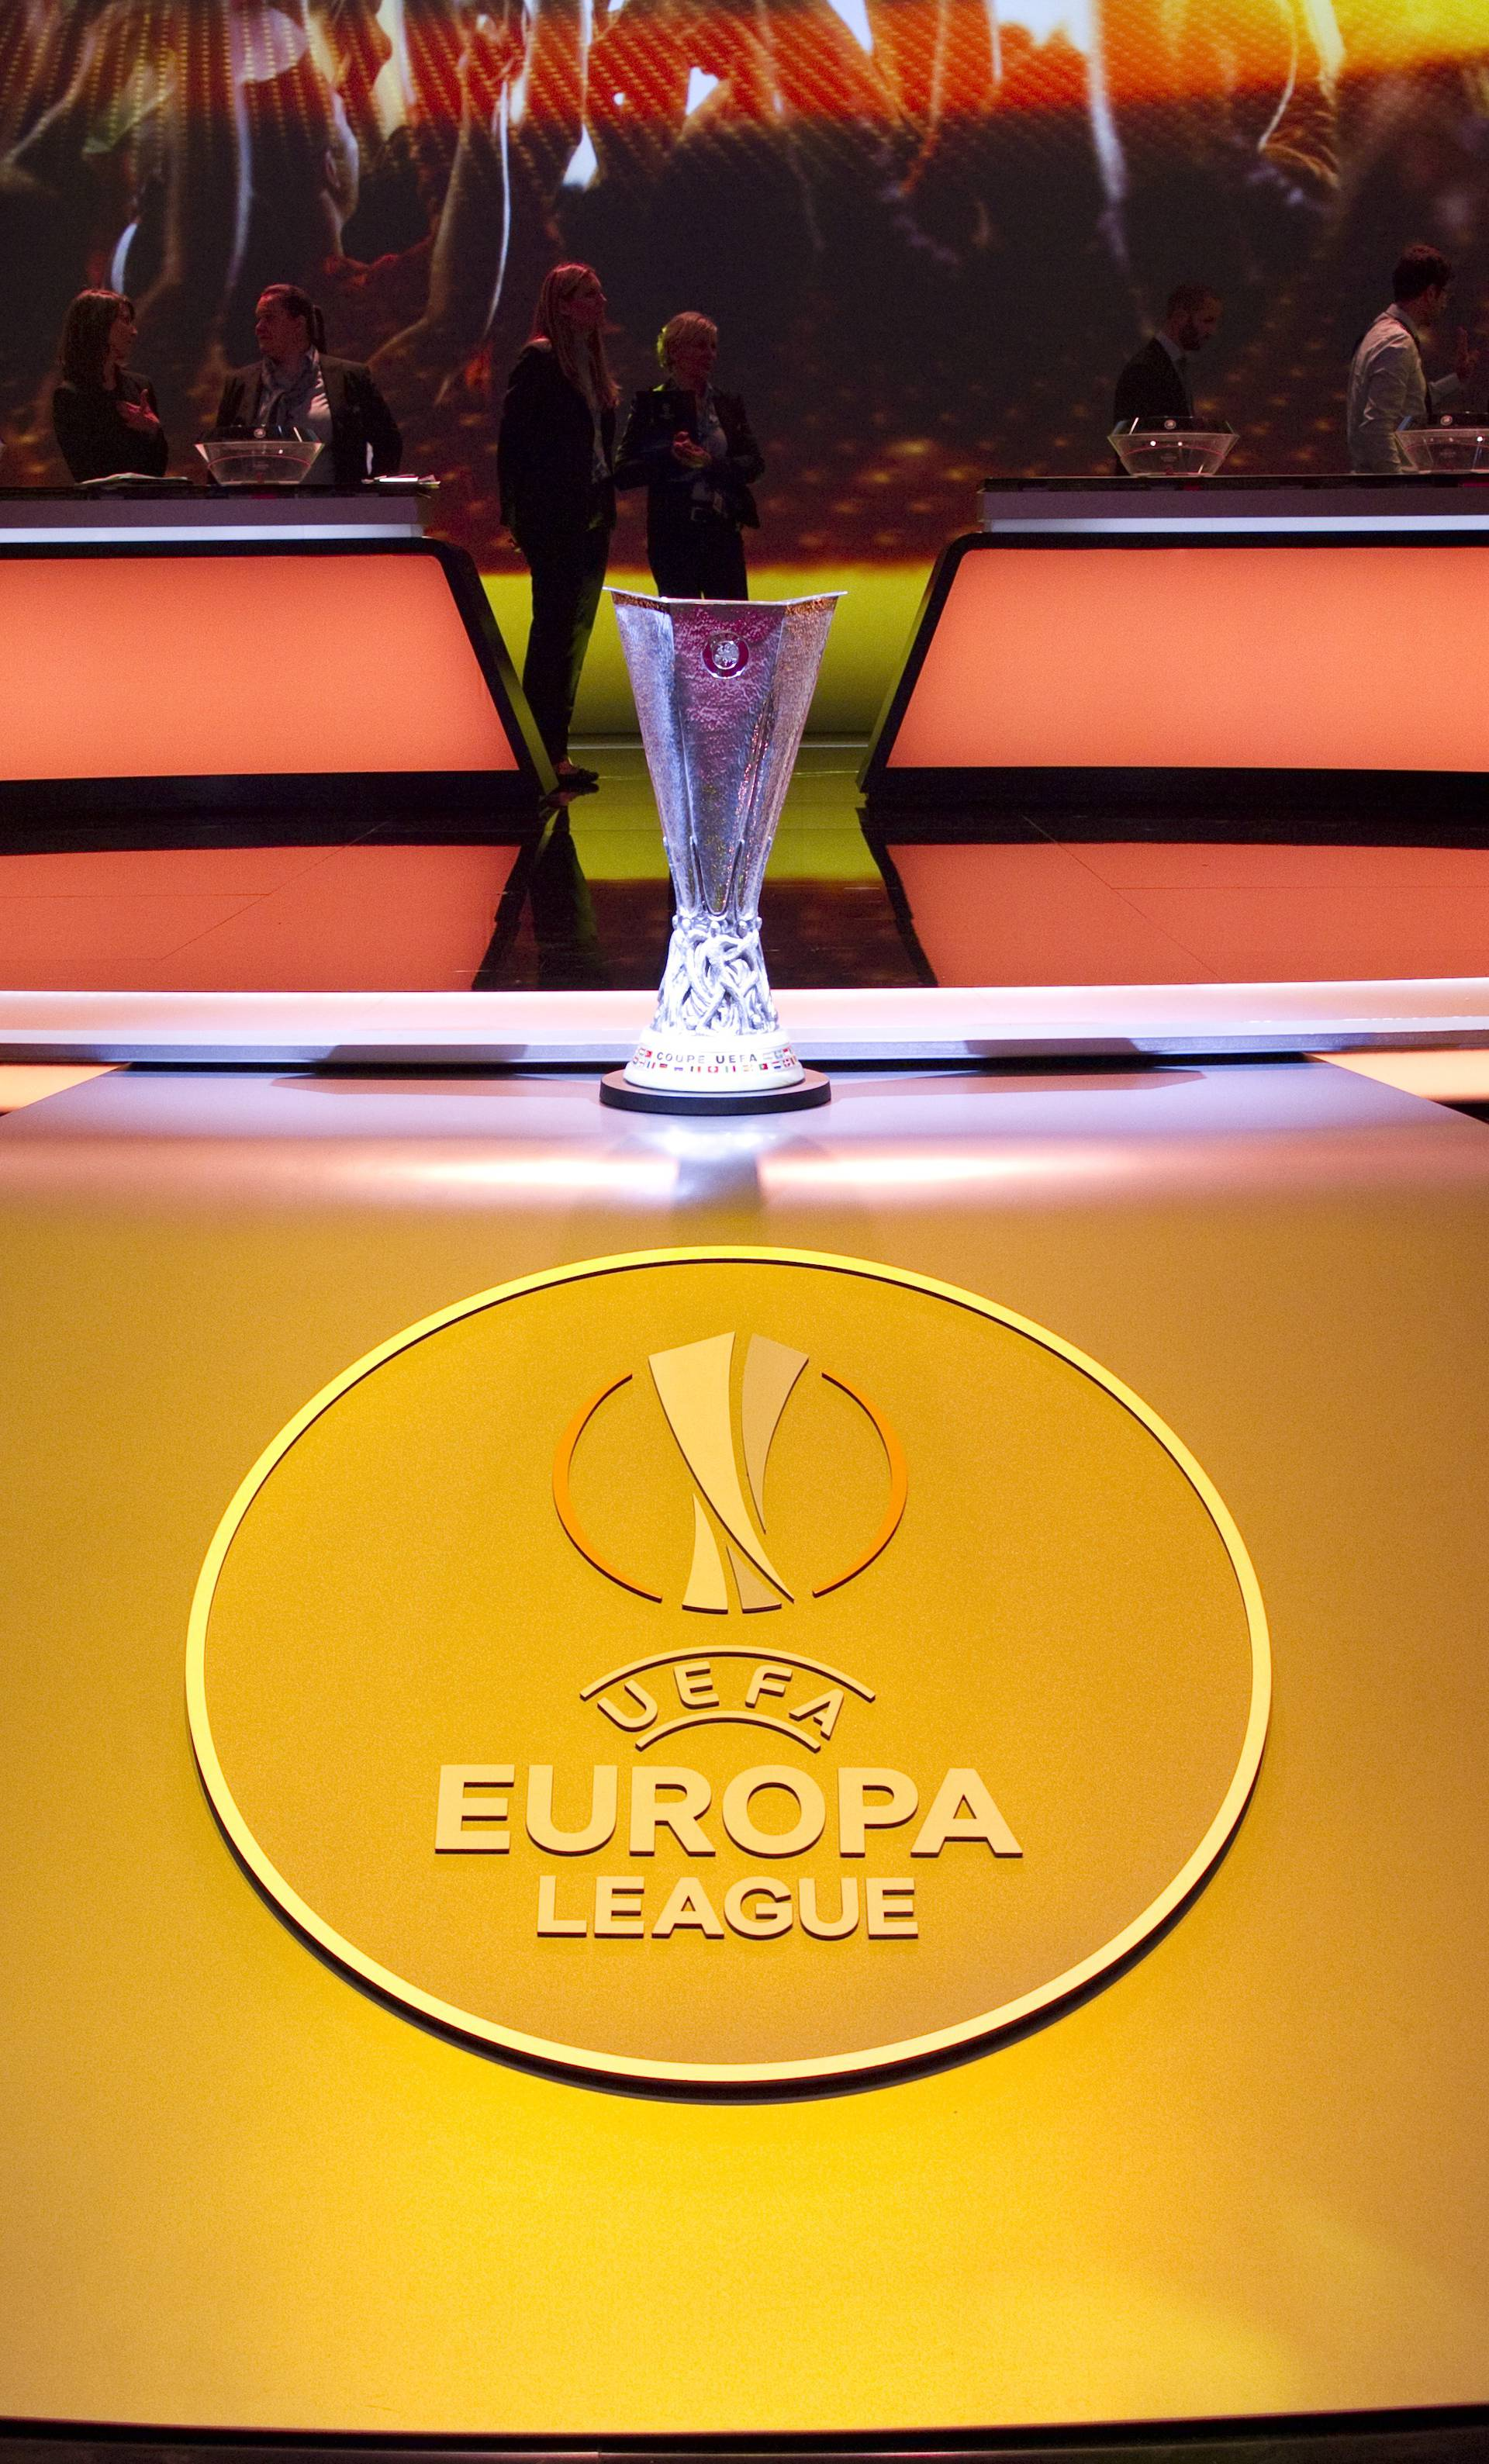 UEFA Europa League / Champions League Group Stage Draw in Monaco 2017/2018